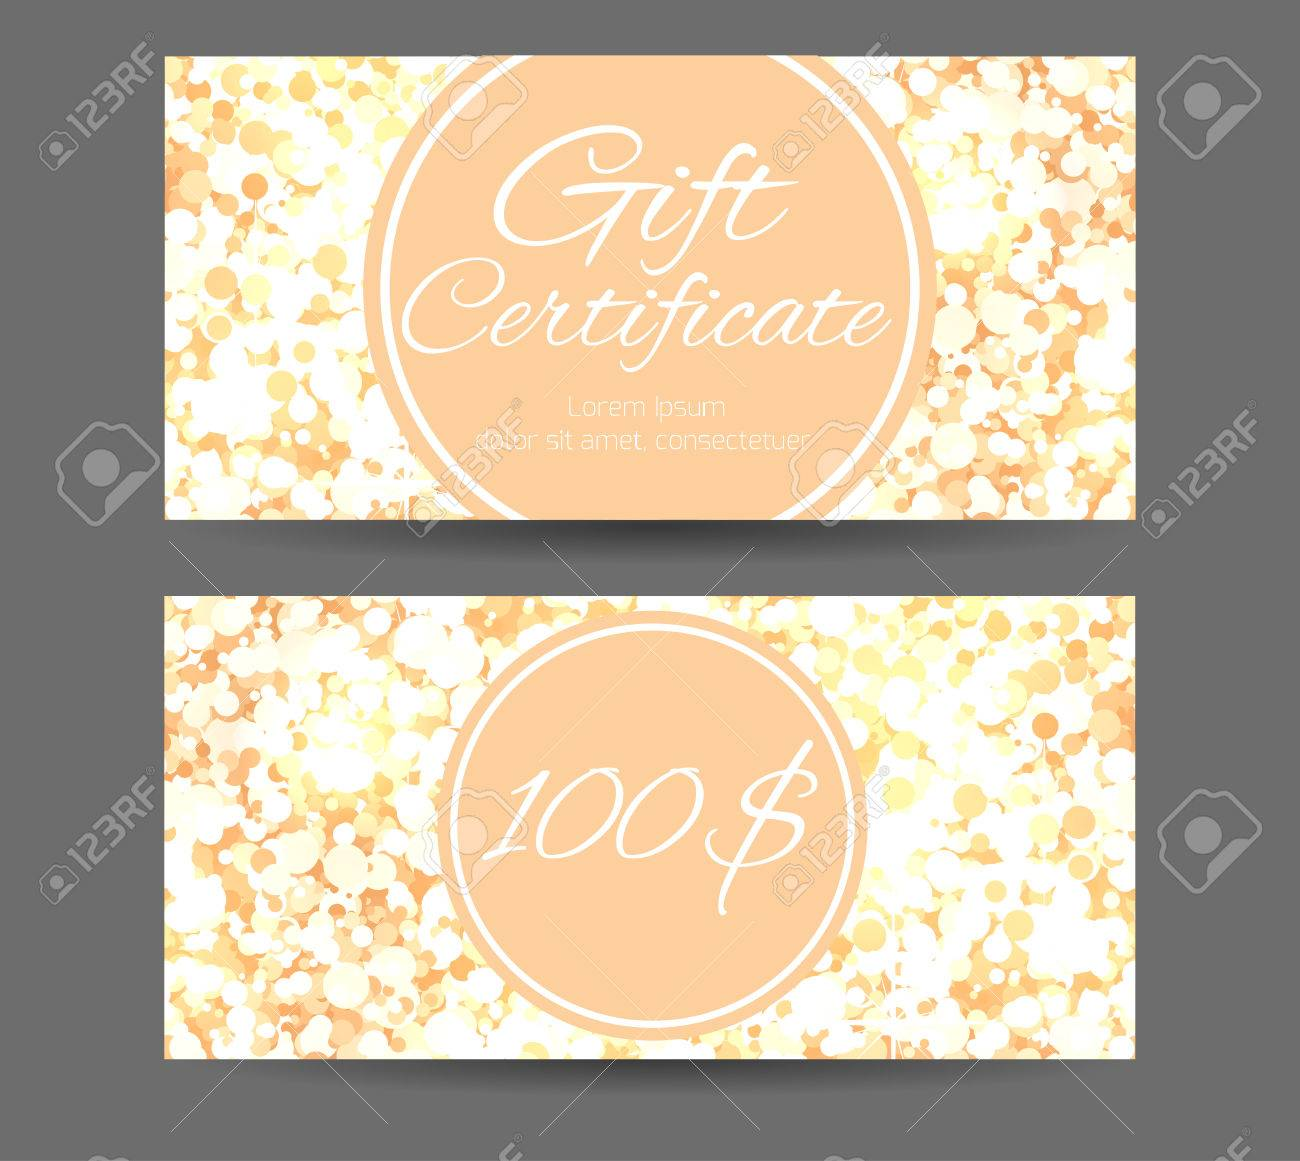 luxury template gift certificate for yoga studio spa center massage parlor beauty salon